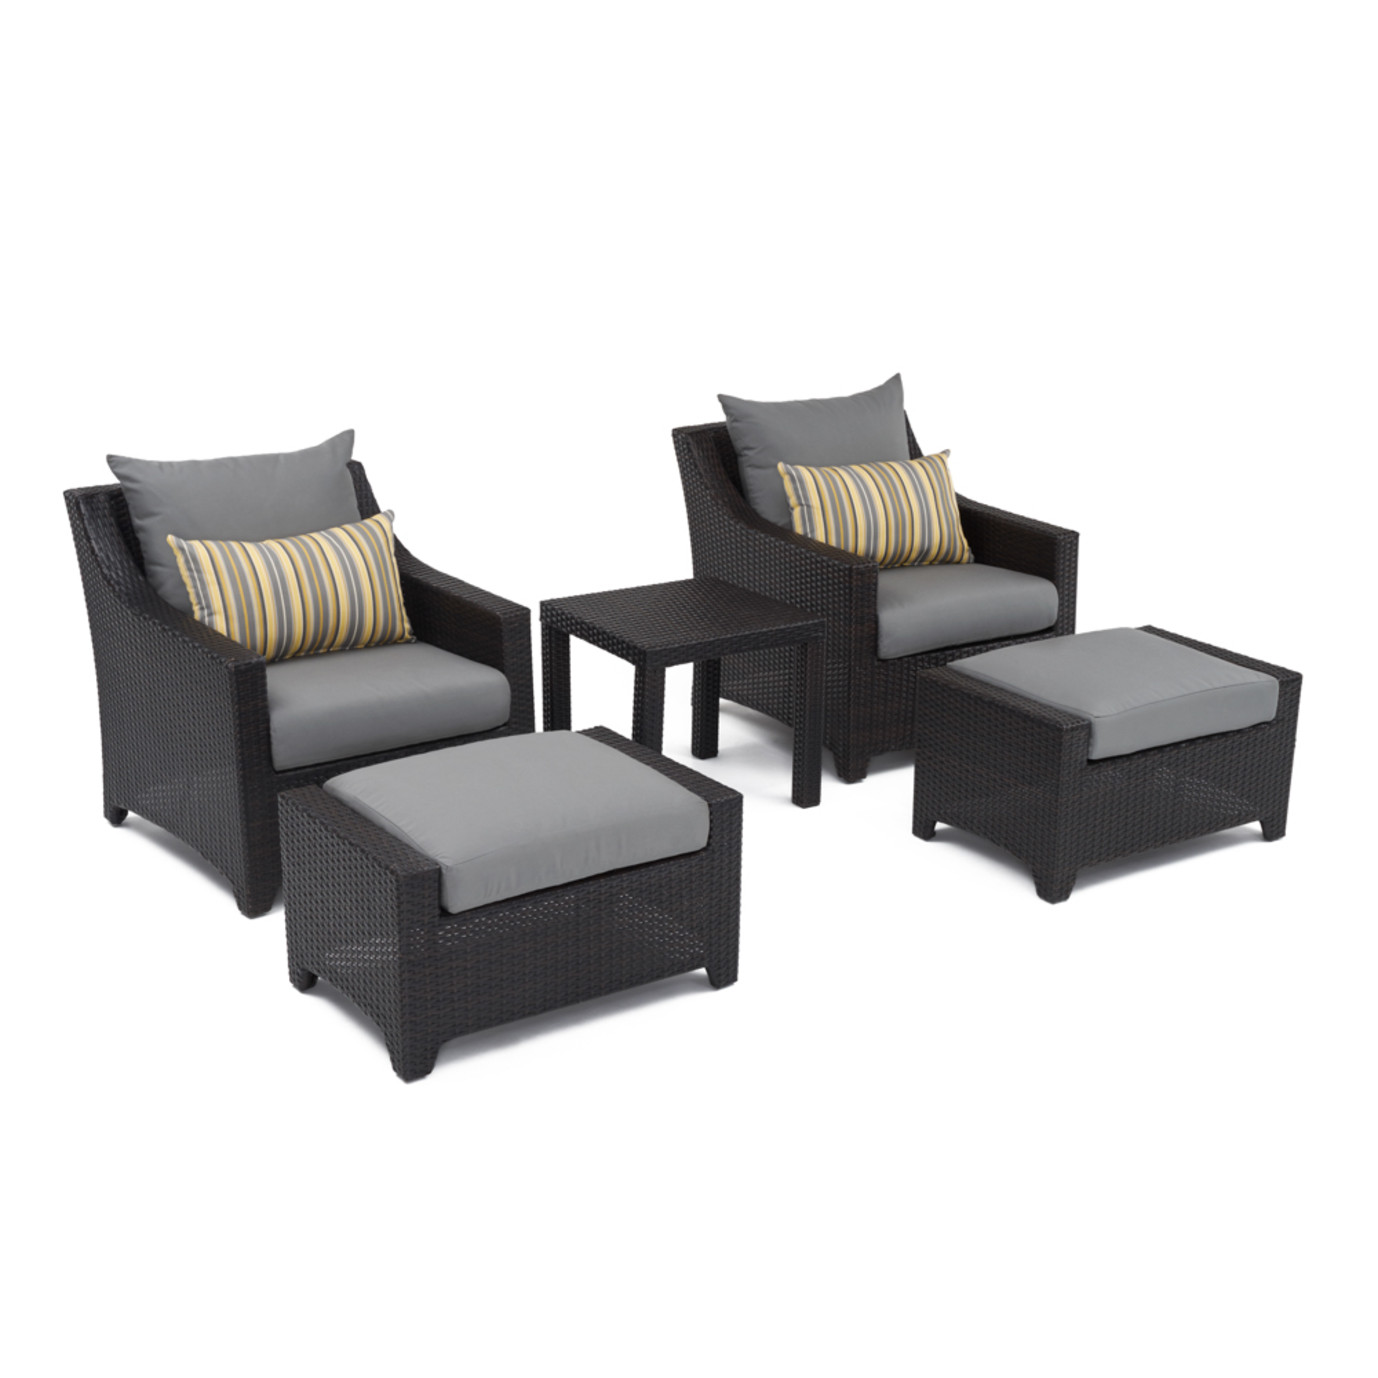 Deco™ 20pc Outdoor Estate Set - Charcoal Gray